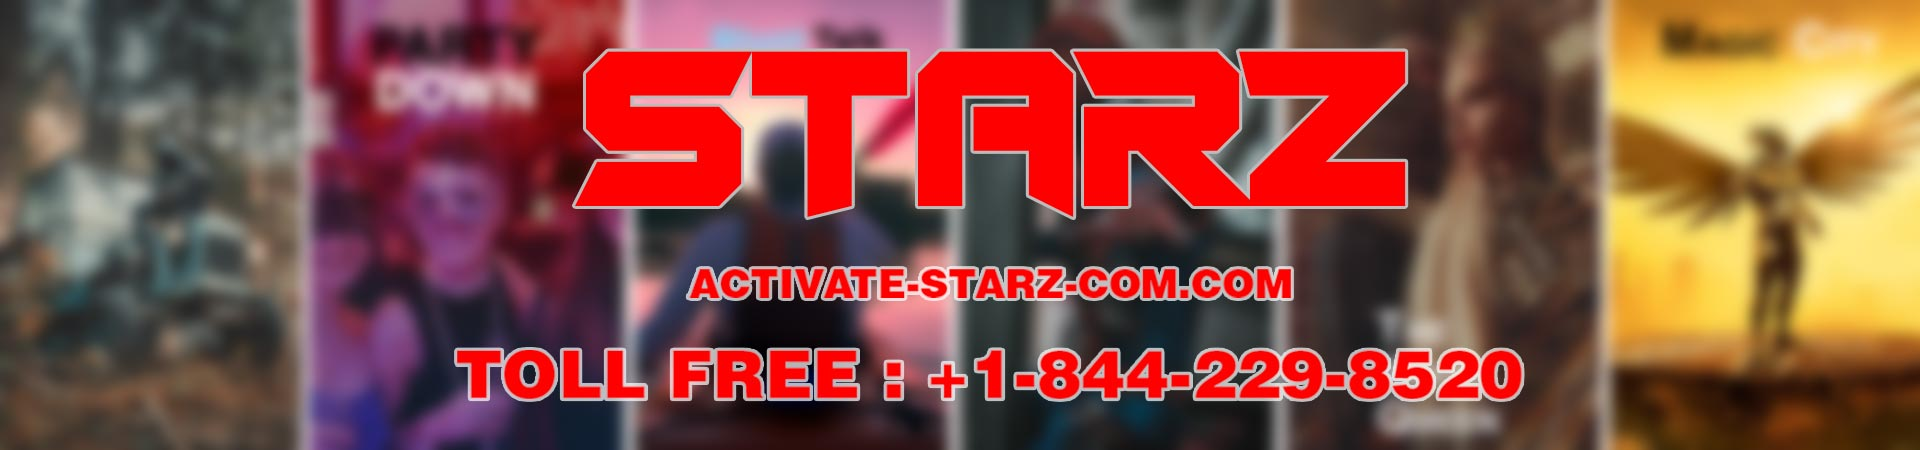 Activate and enjoy Starz Channel Shows image 1